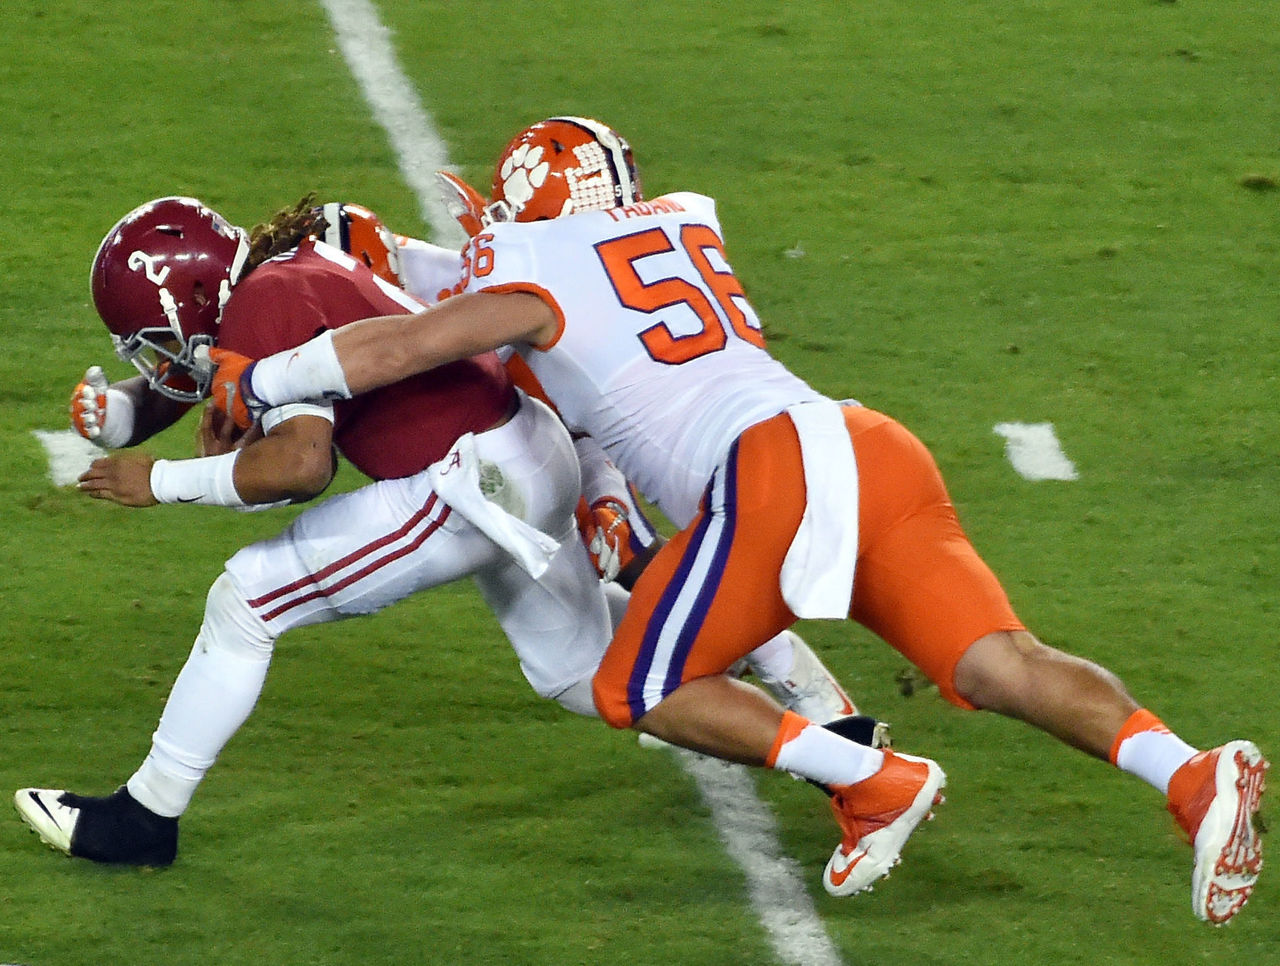 Cropped 2017 01 10t015428z 713132858 nocid rtrmadp 3 ncaa football cfp national championship clemson vs alabama